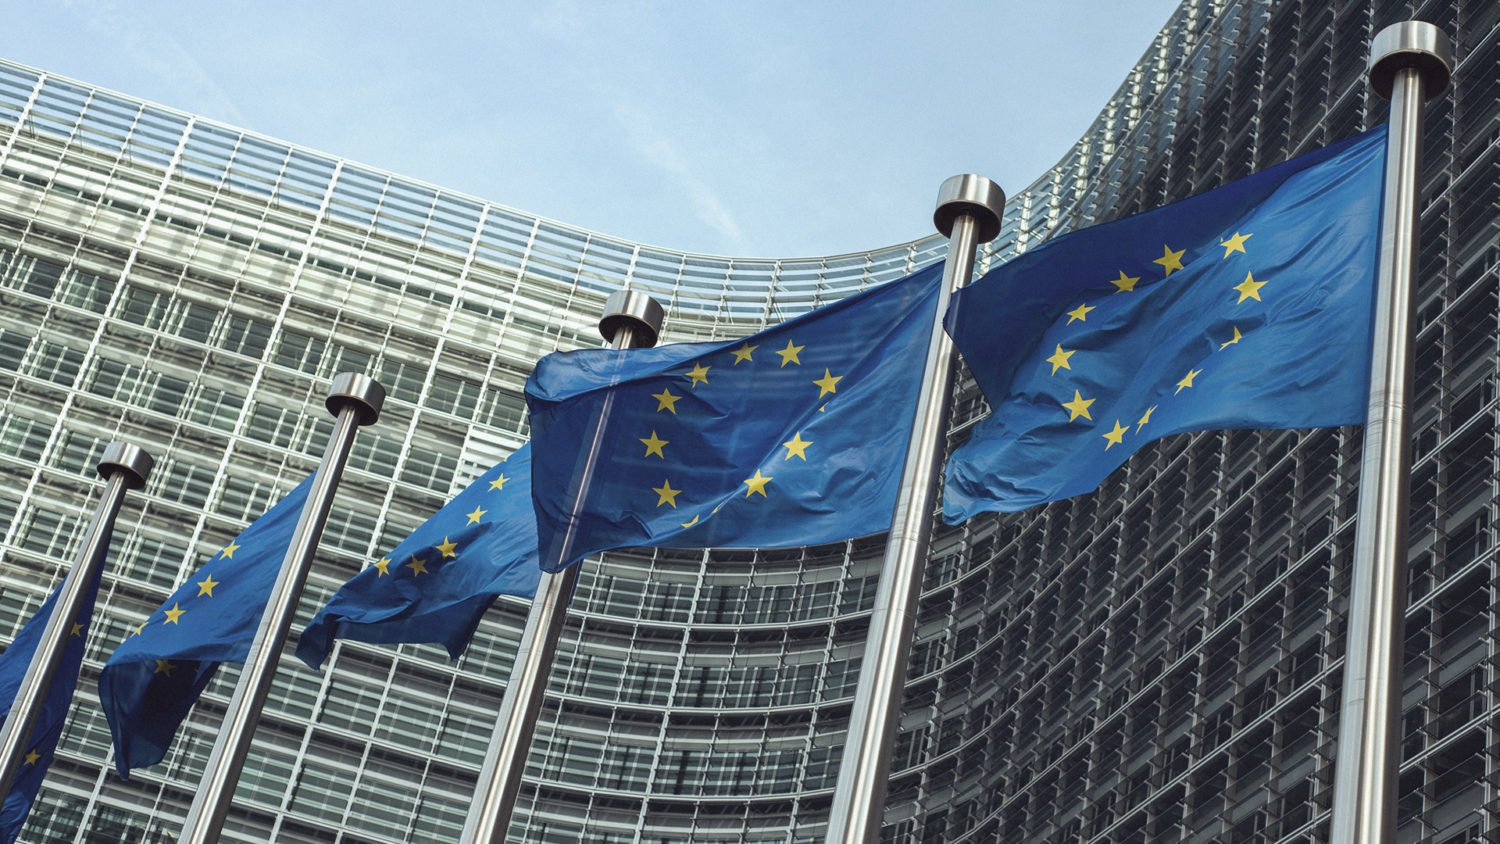 European Commission draft proposal on crypto-assets has stablecoins in its crosshairs